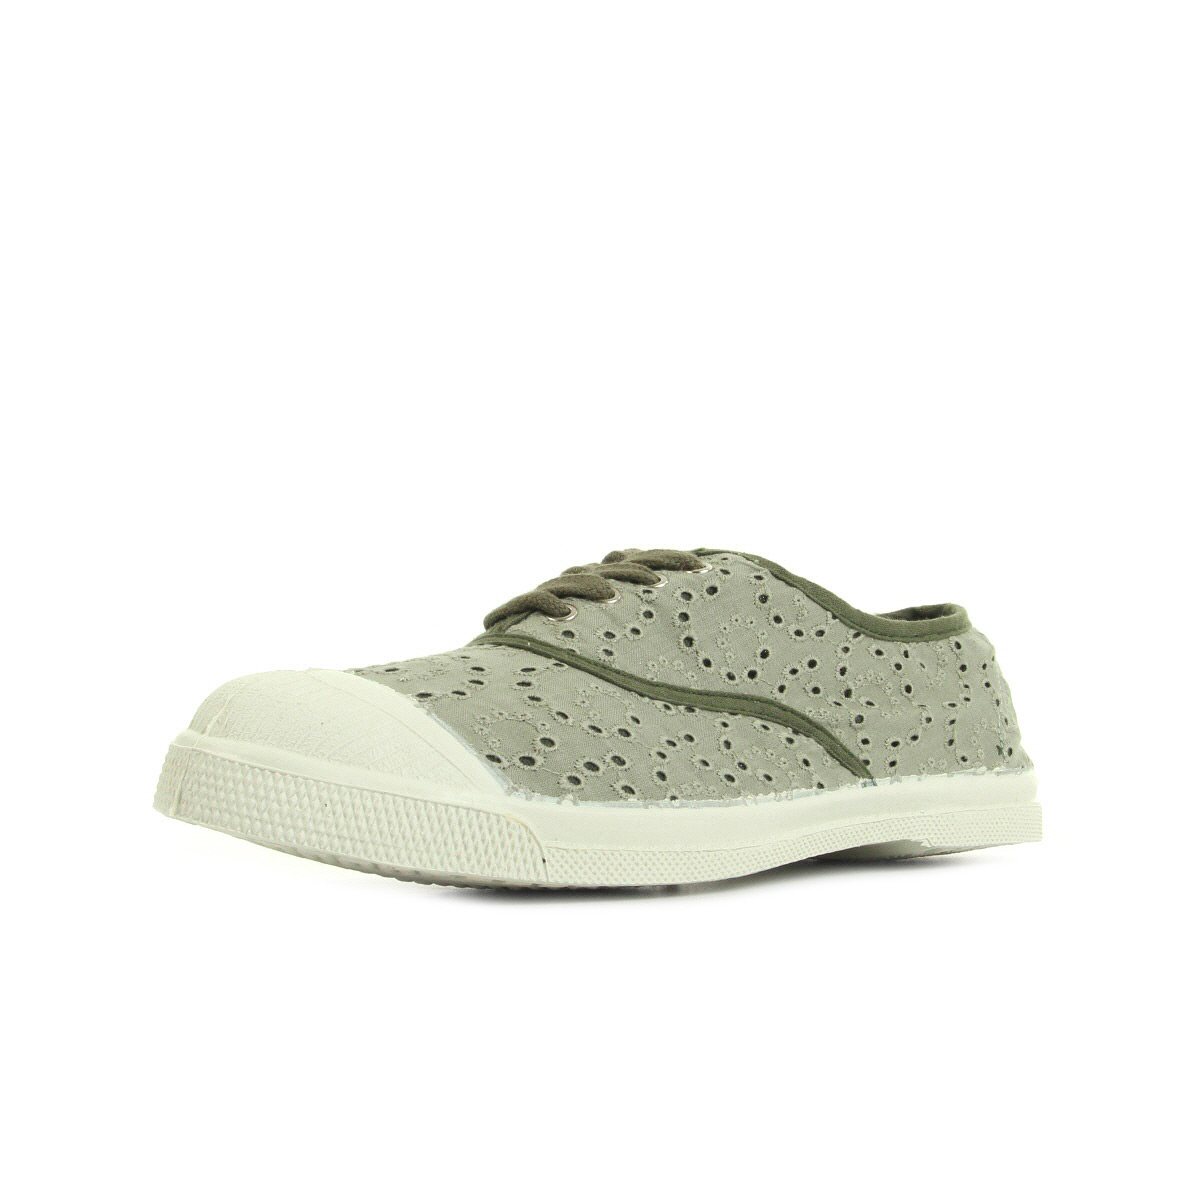 bensimon tennis broderie anglaise kaki clair f15004c247612 chaussures homme homme. Black Bedroom Furniture Sets. Home Design Ideas